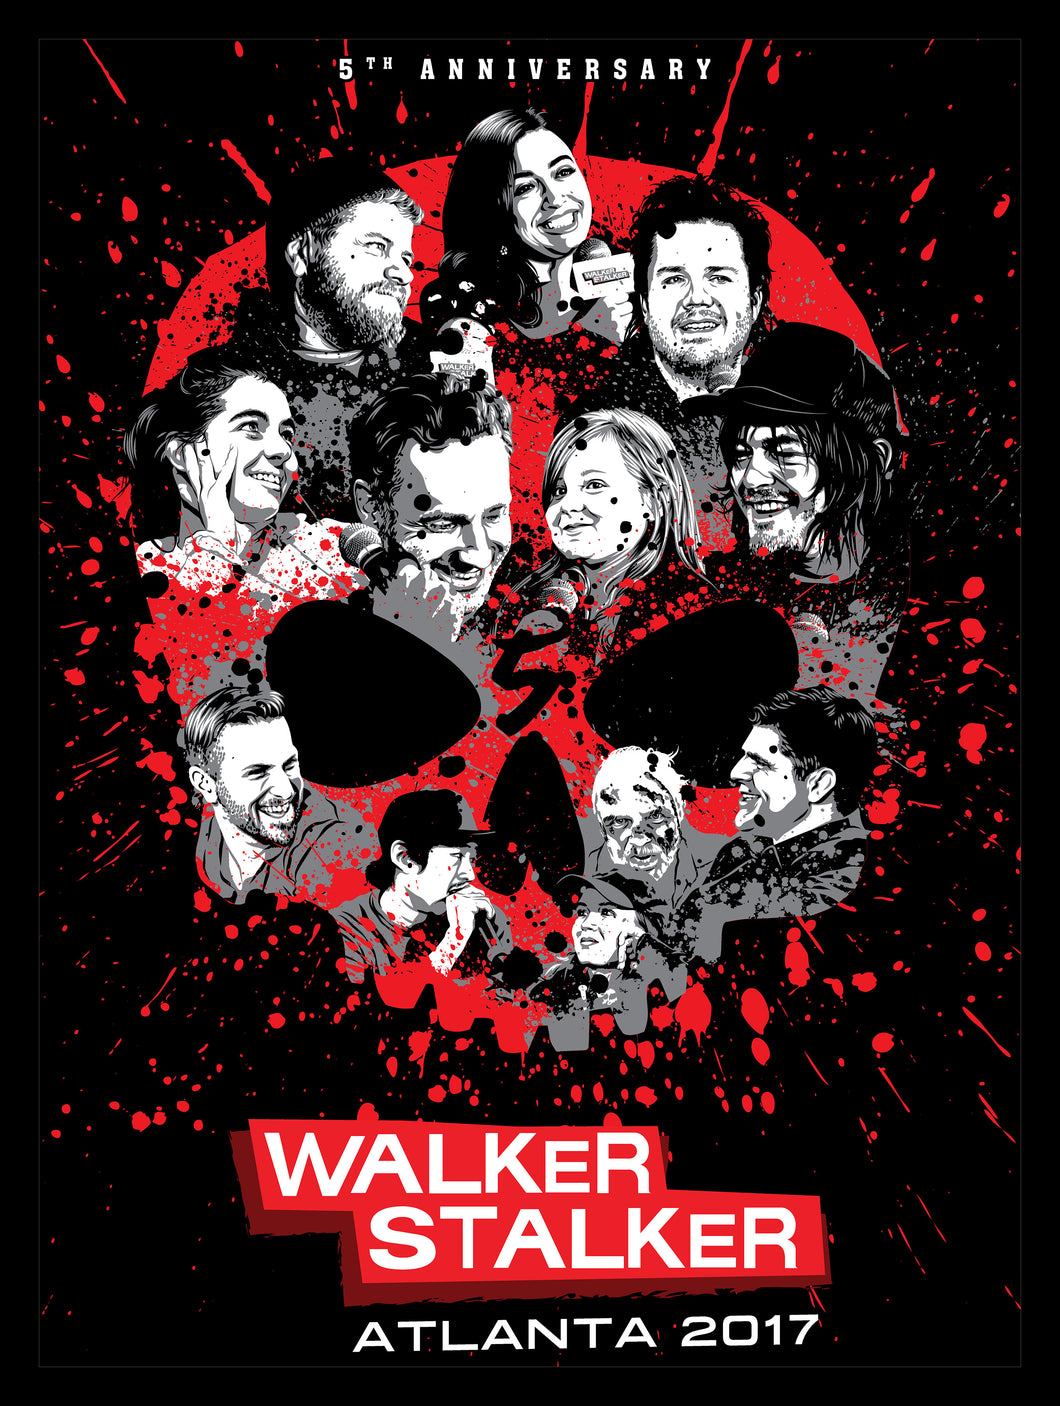 Walker Stalker Con Atlanta 2017 Screen Print Poster by Tracie Ching